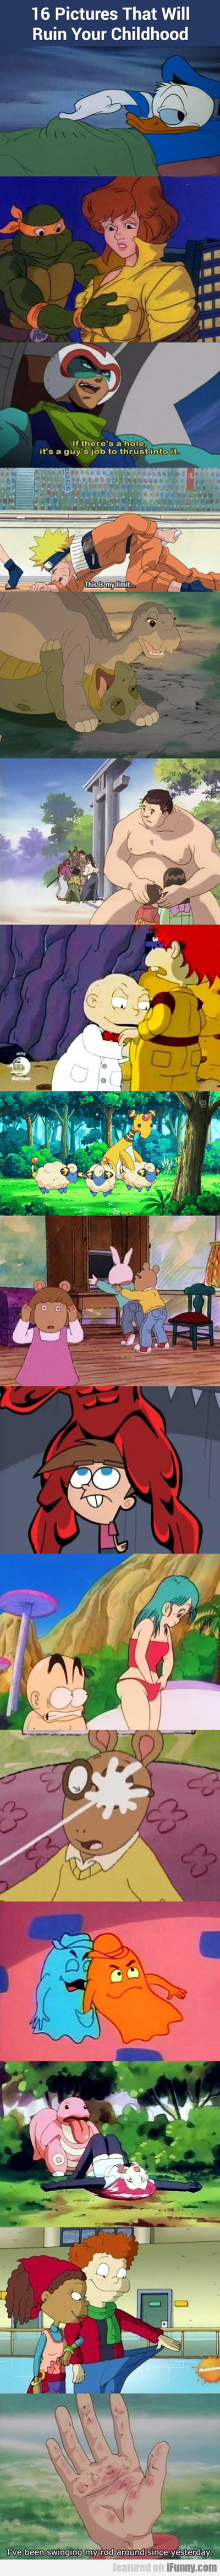 16 Pictures That Will Ruin Your Childhood...